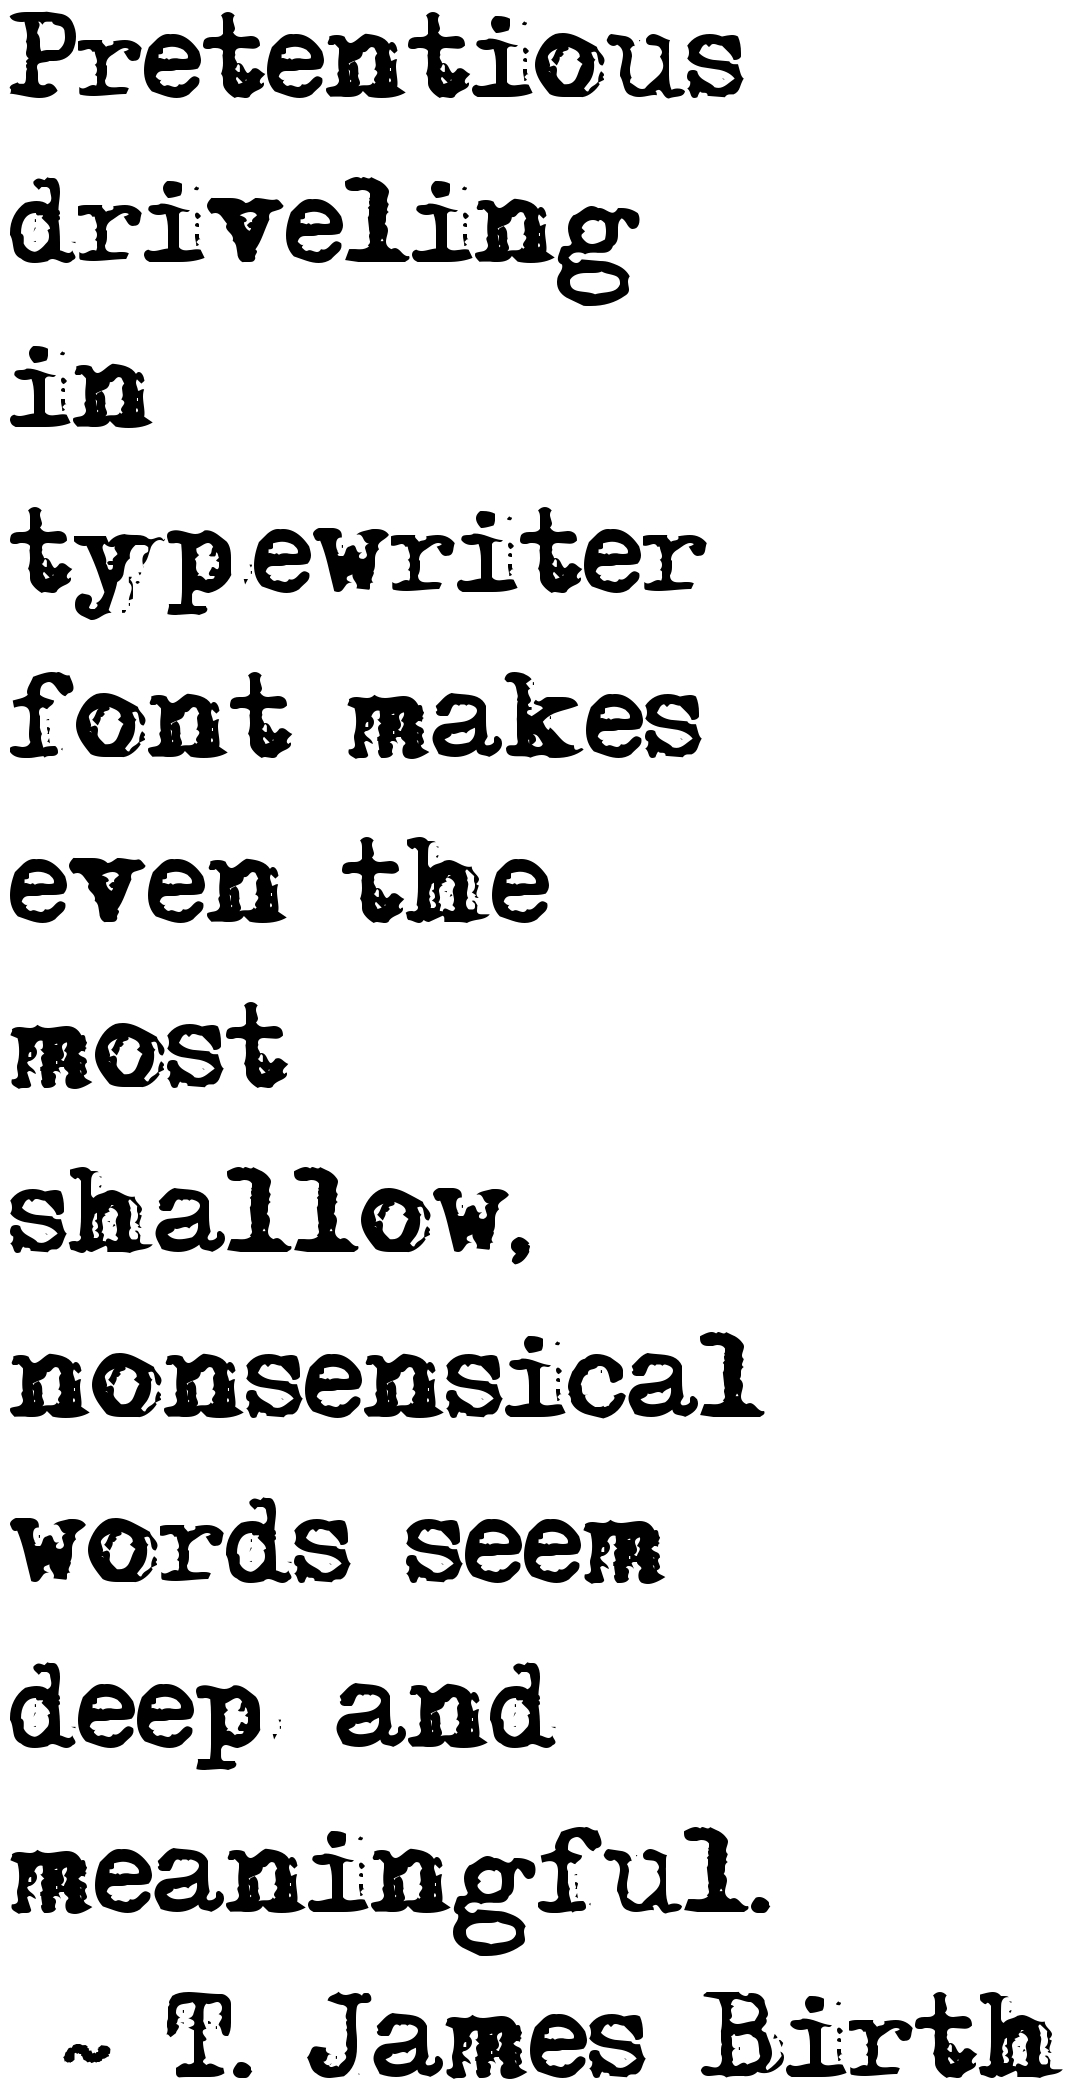 Pretentious driveling in typewriter font makes even the most